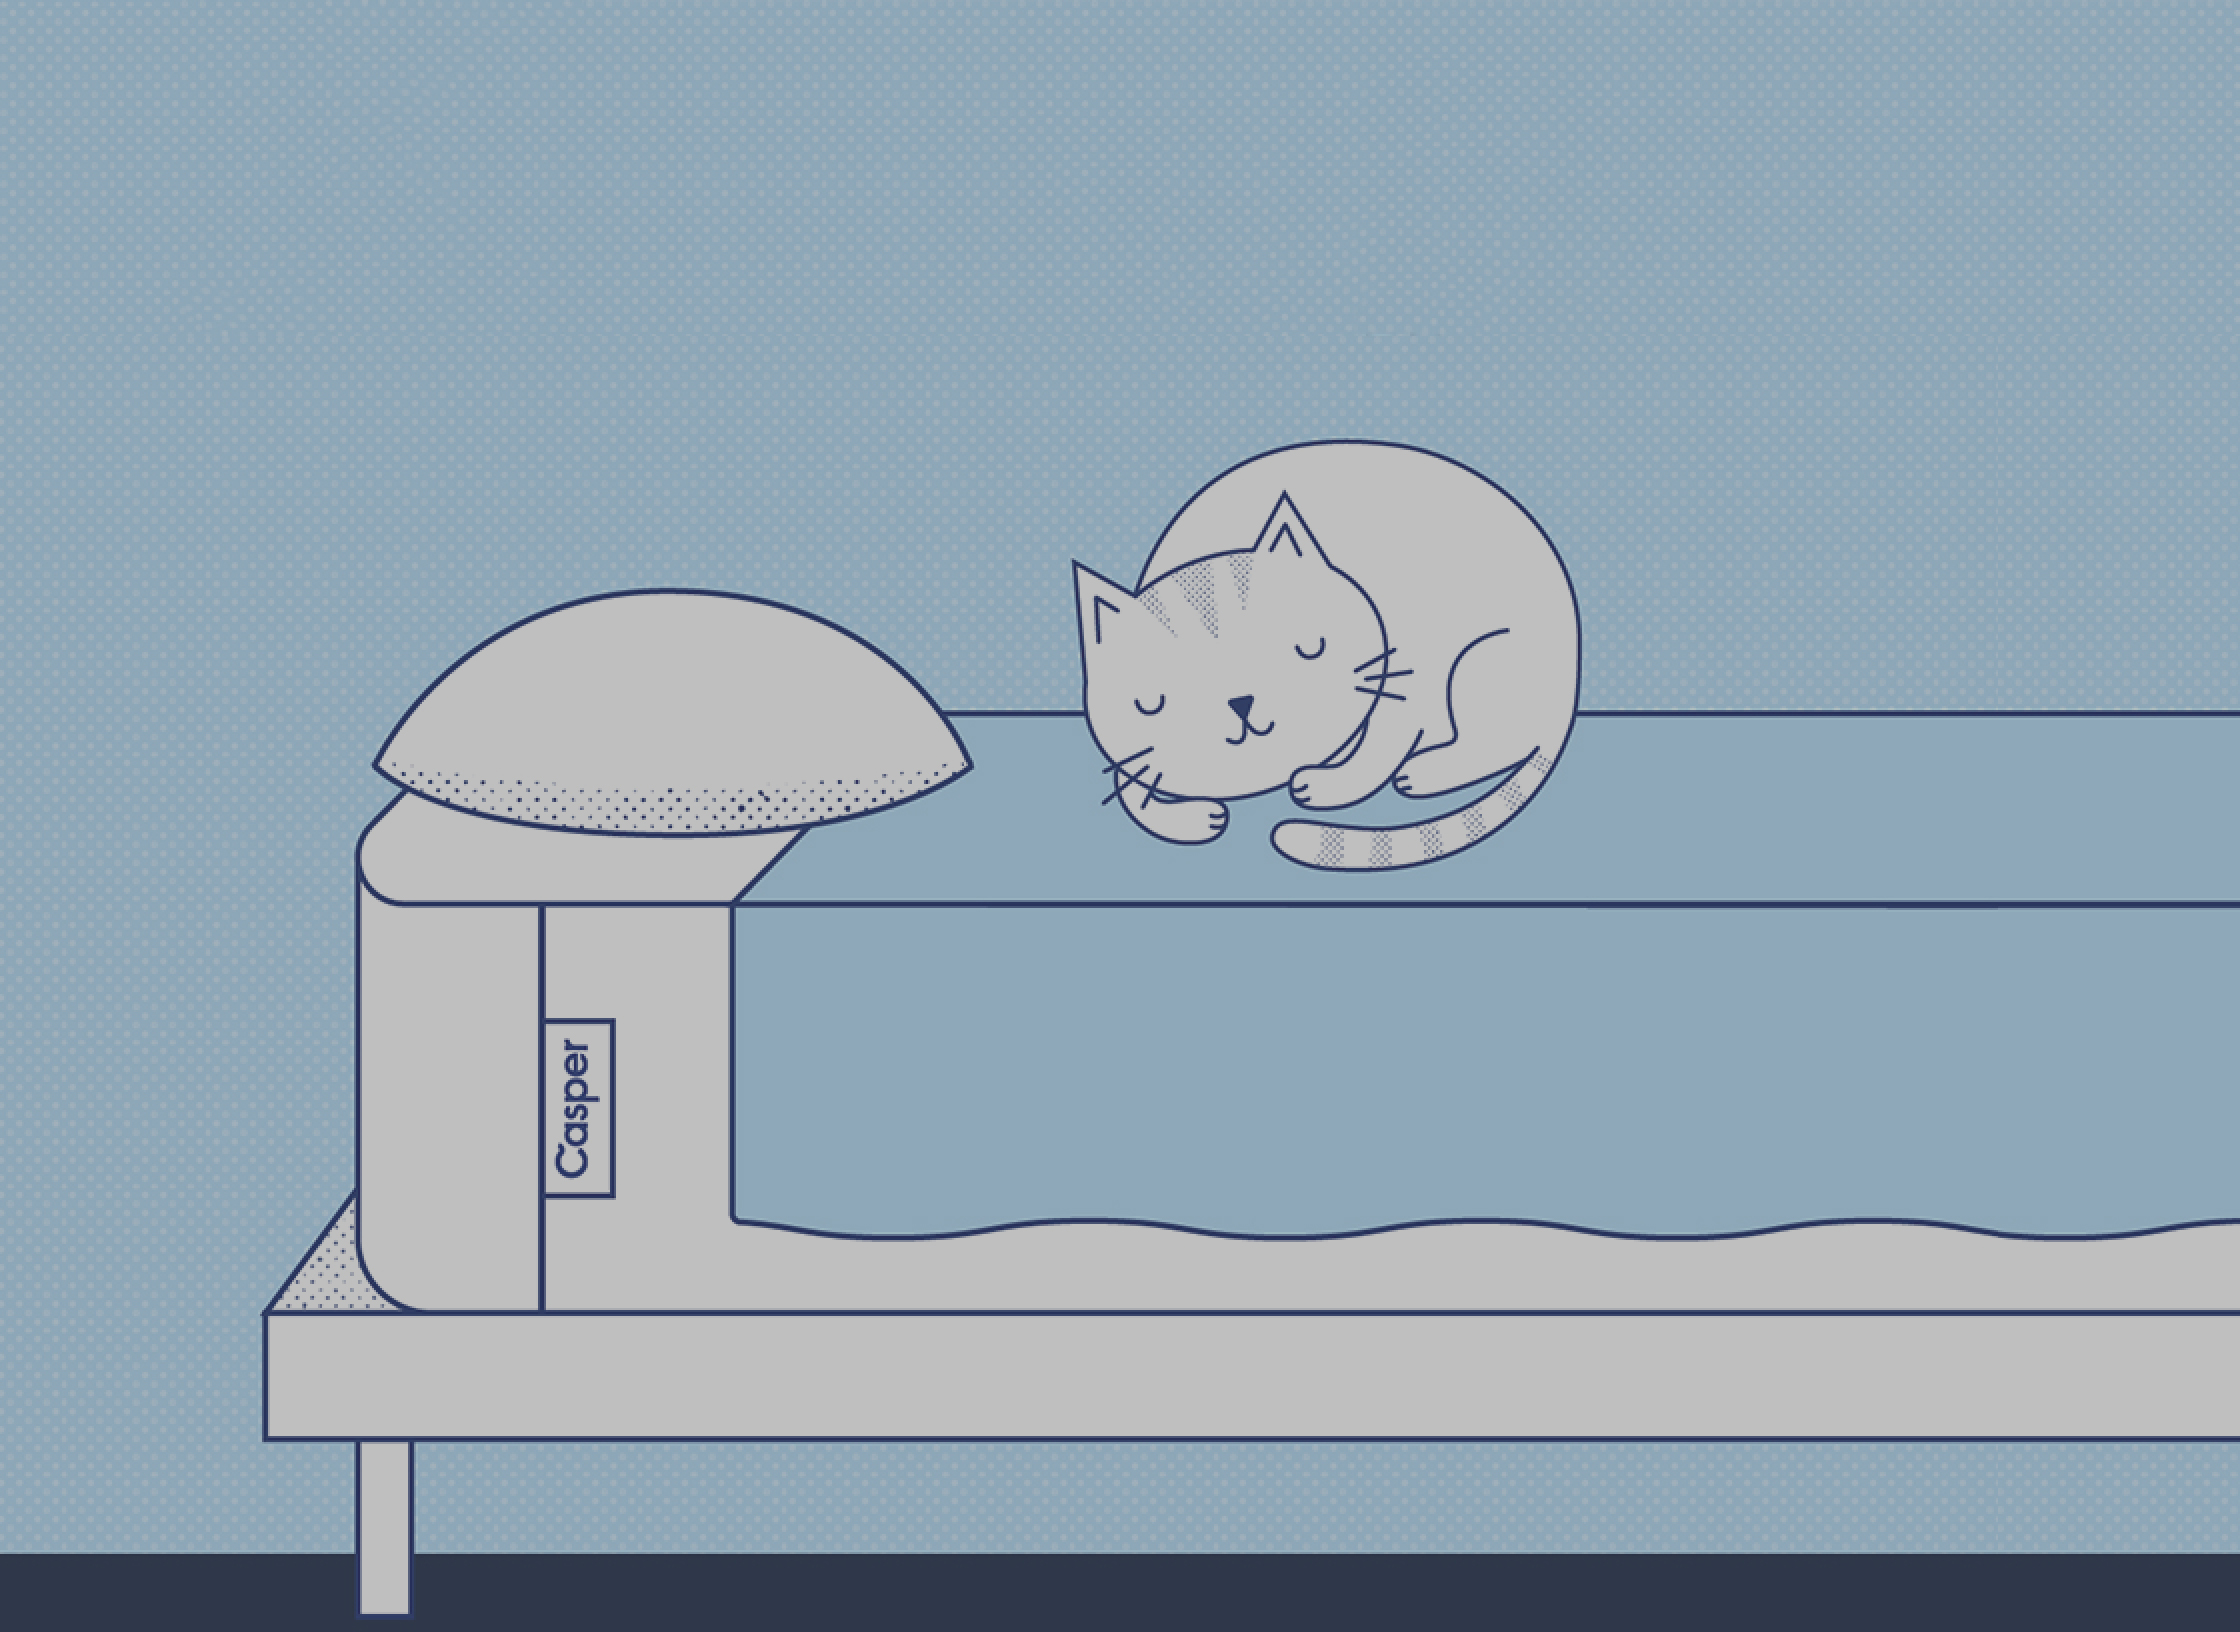 illustration of a cat sleeping on a bed